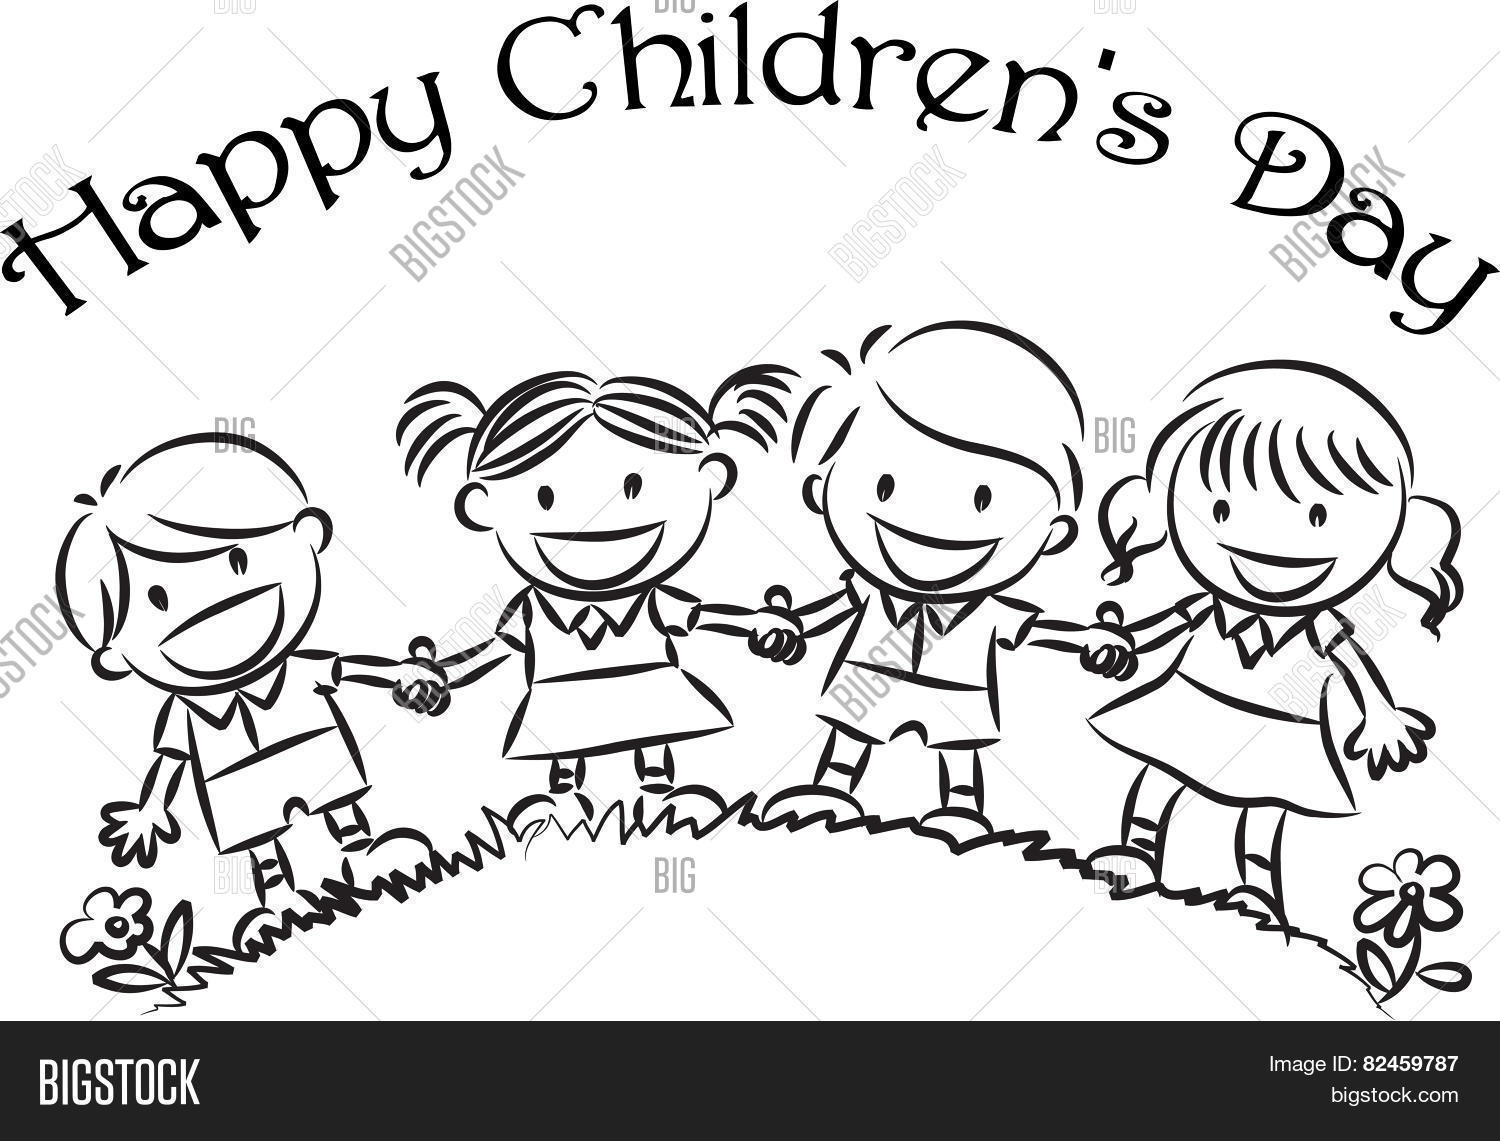 1500x1141 Happy Children's Day Vector Amp Photo Bigstock